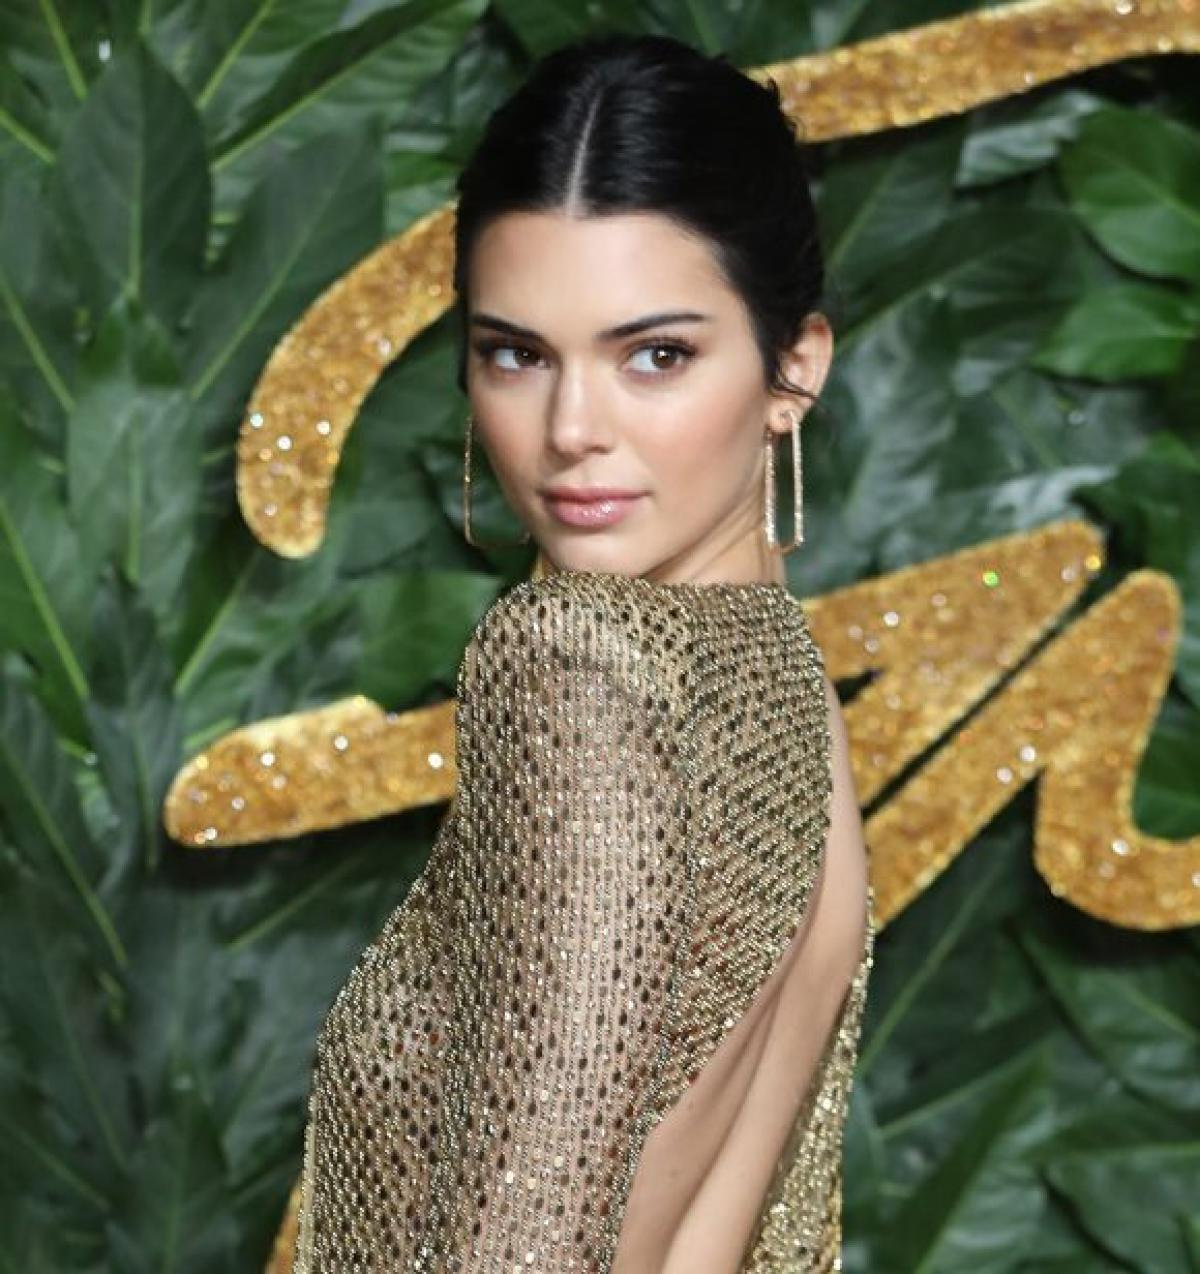 Kendall Jenner, Bella Hadid will reportedly be subpoenaed over Fyre Festival payments